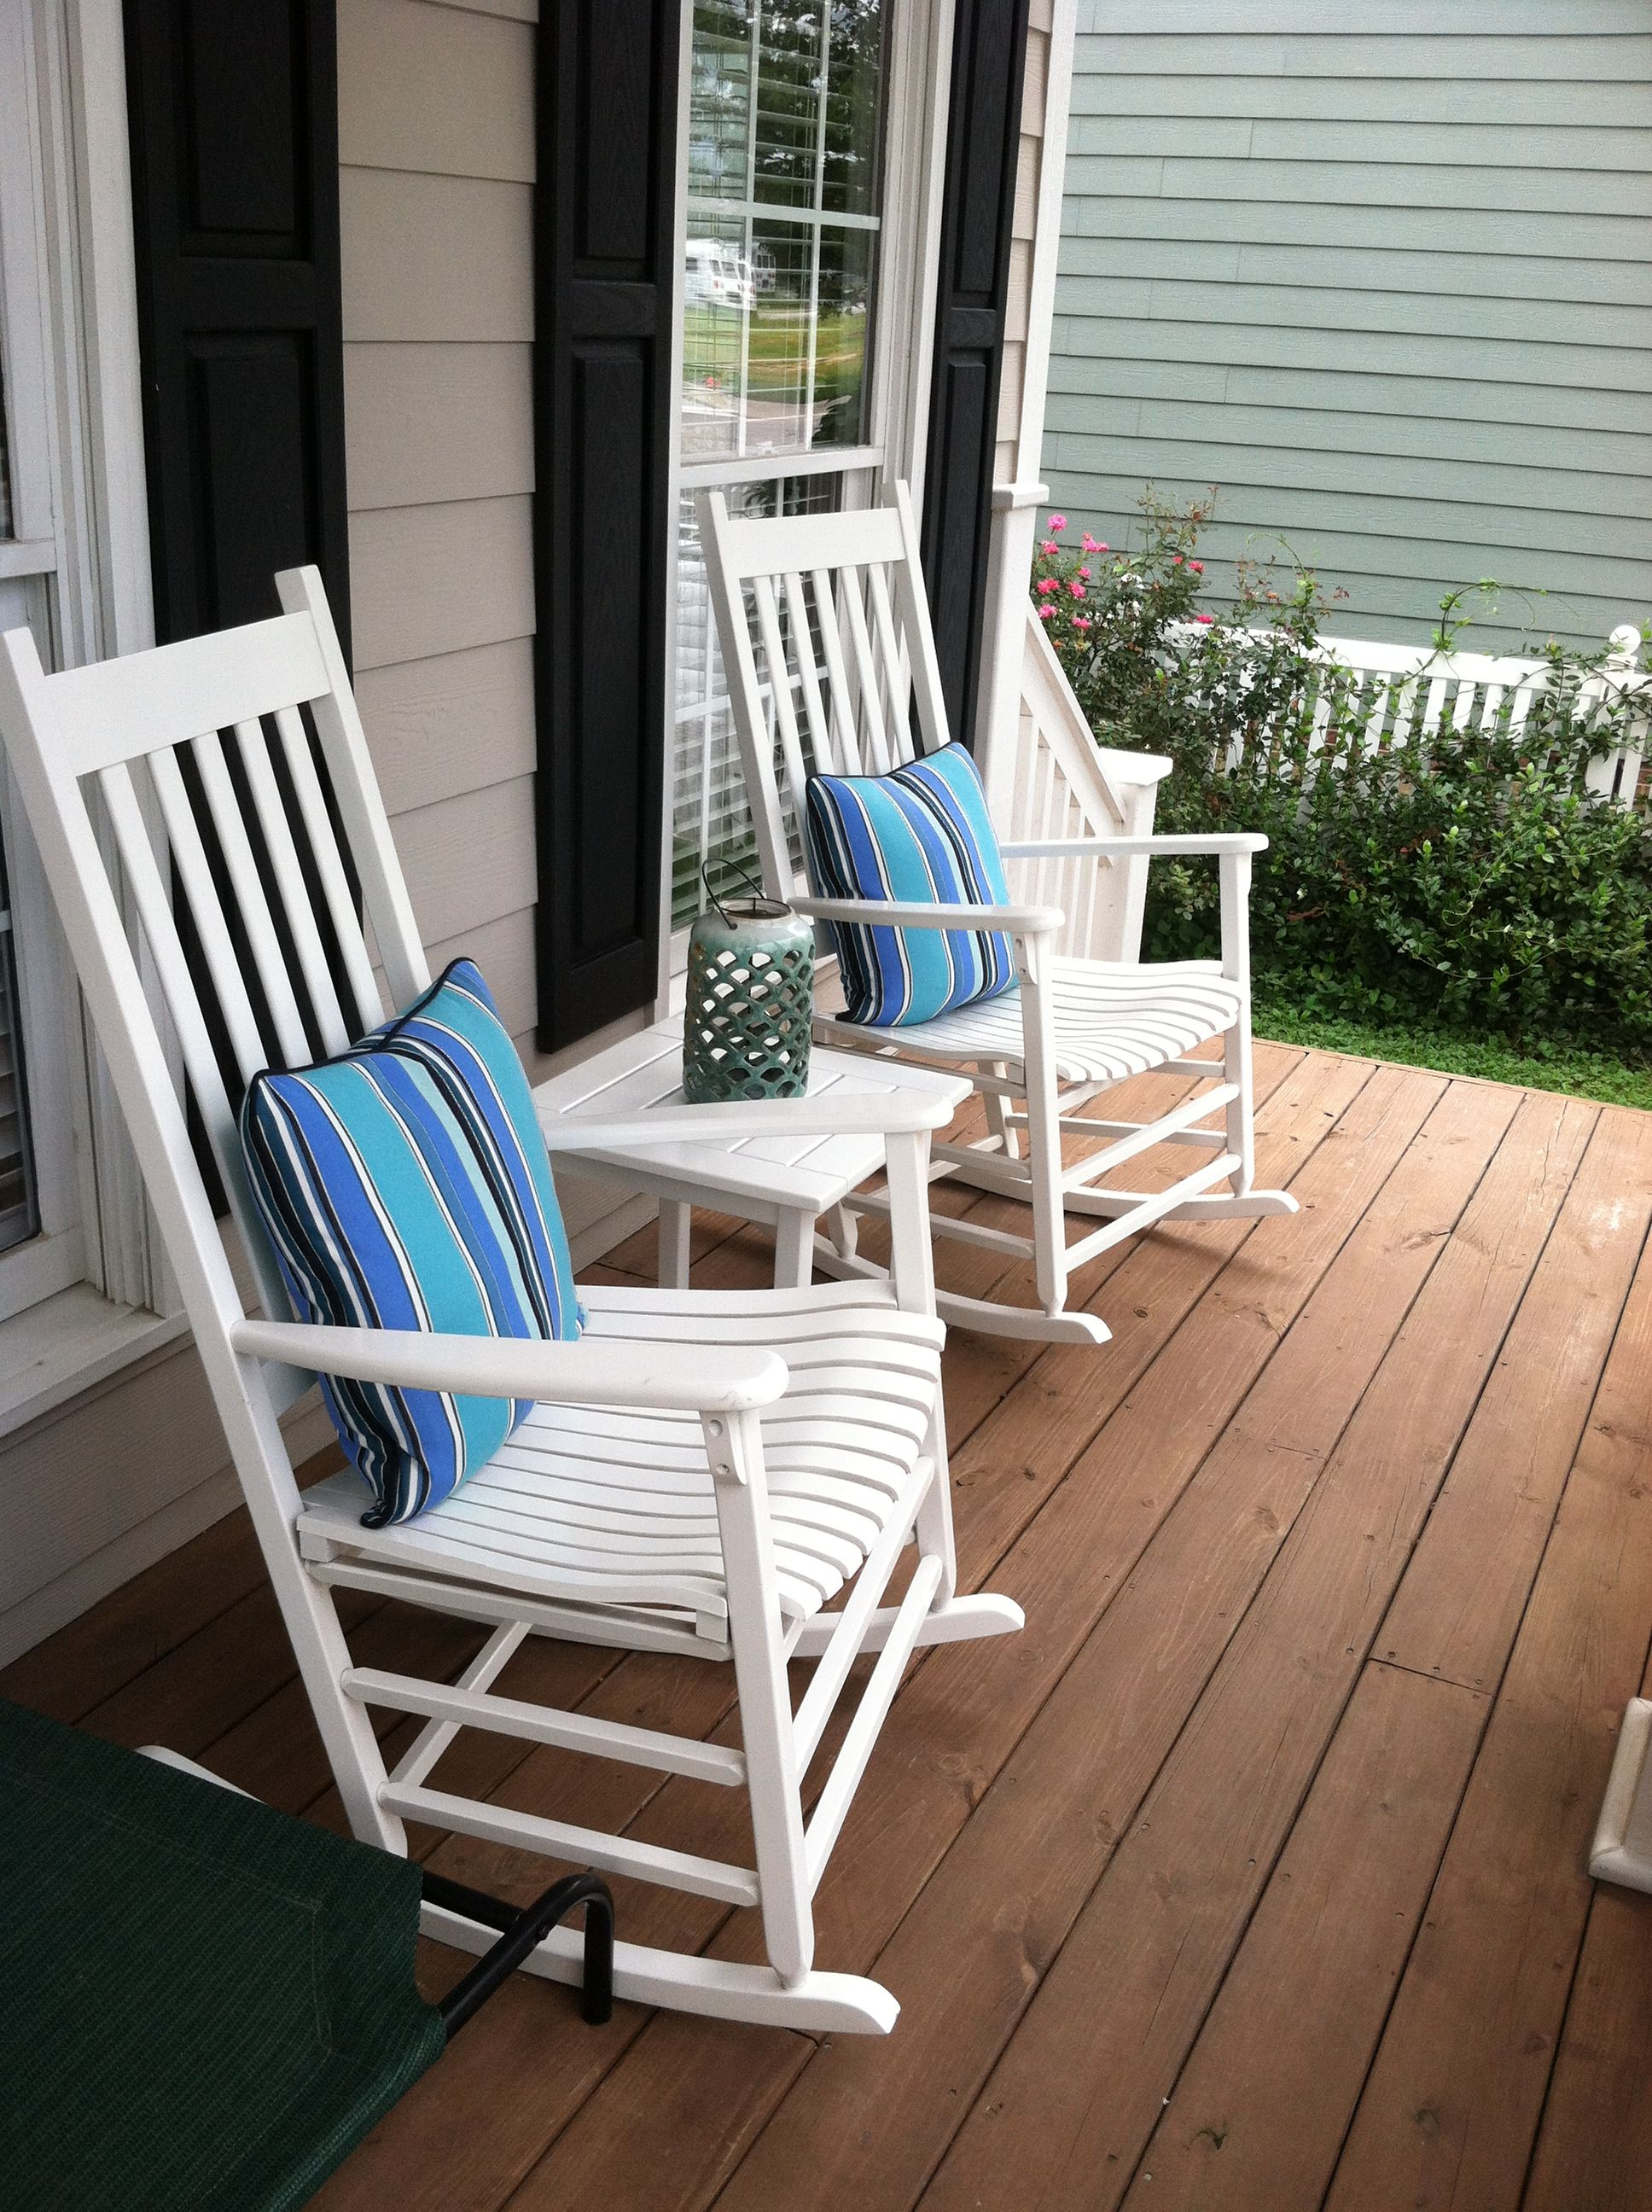 White Rocking Chairs On Front Porch With Summer Perfect Sunbrella Pillows And Ombre Lantern Front Porch Furniture Porch Furniture Patio Furniture